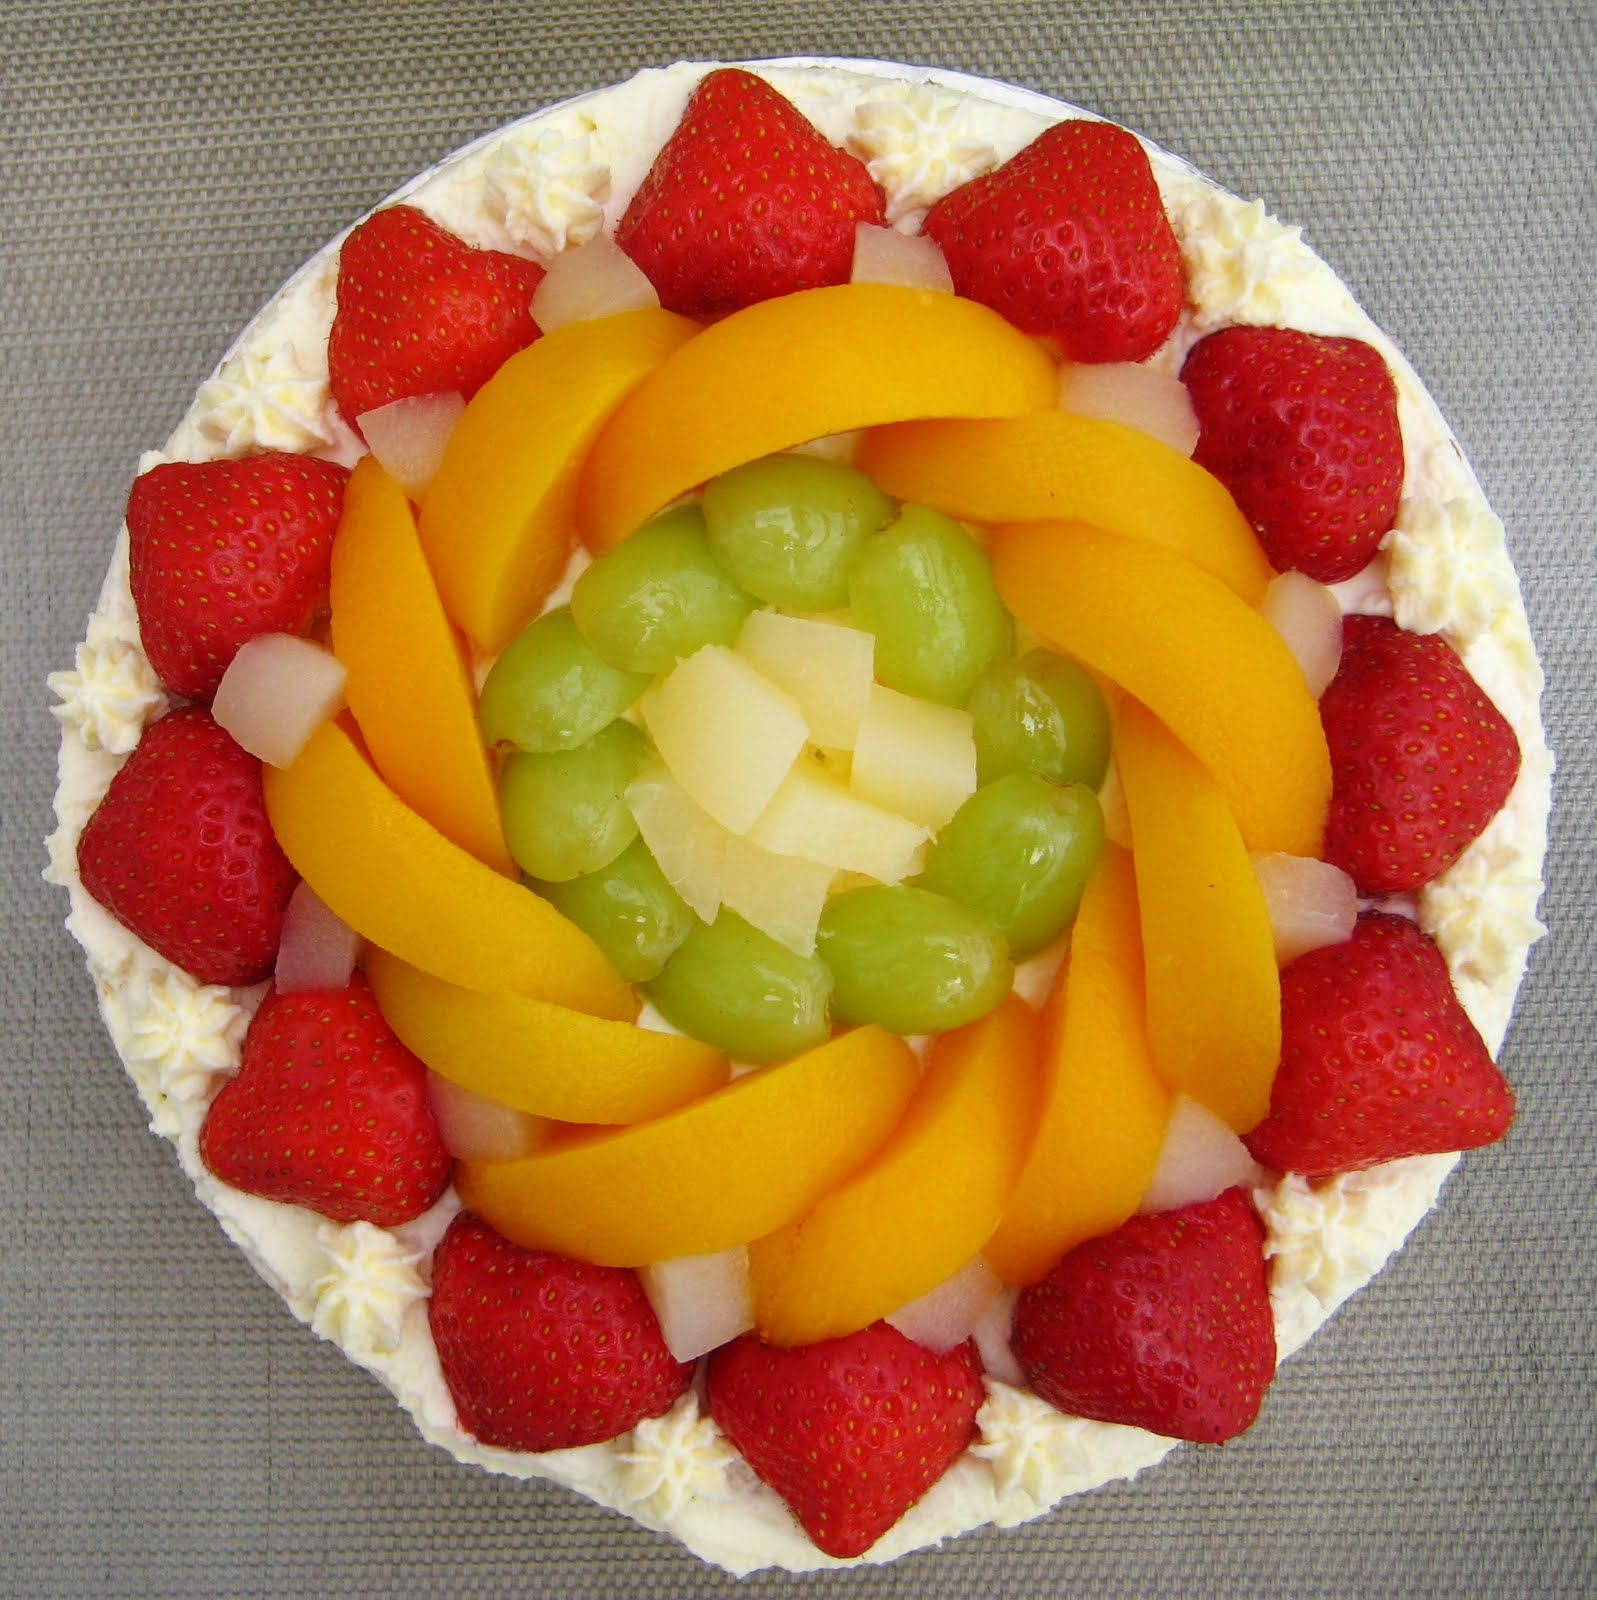 fruits food and cake - photo #40